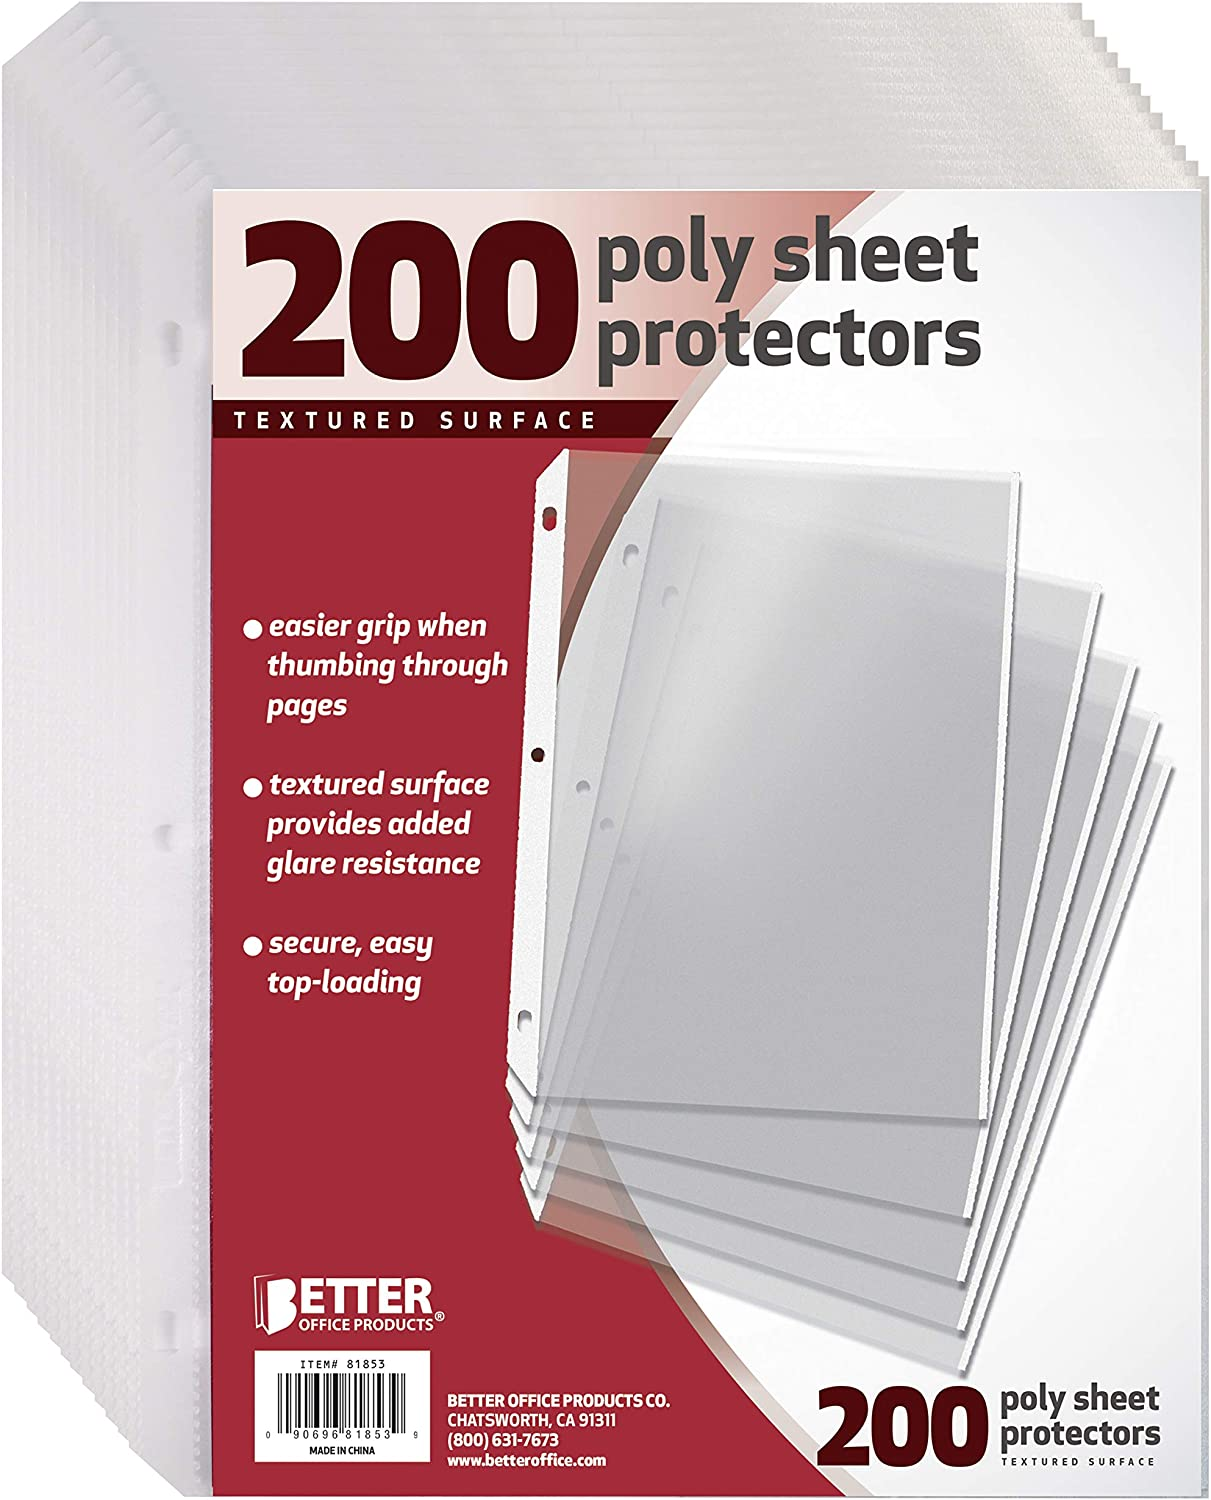 """200 Count Textured Sheet Protectors by Better Office Products, 8.5 x 11"""", Textured for Added Anti Glare, Extra Privacy, and Easier Handling, Top Load, 200 Pack"""